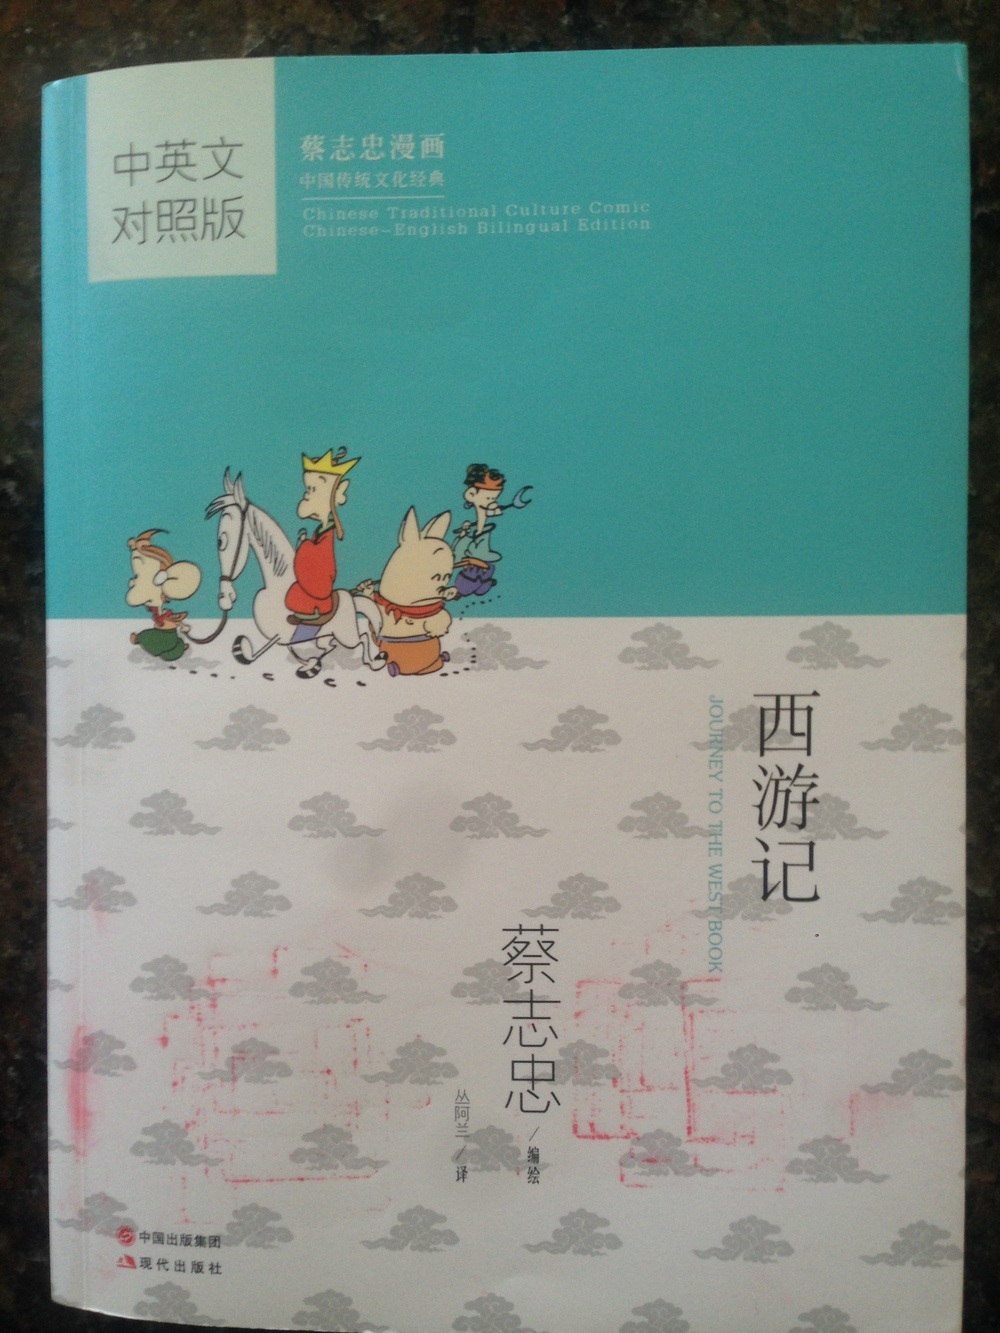 Chinese cartoonist Tsai, Chin Chung gave me two of his legendary comic collection books, over 40 million copies sold worldwide!